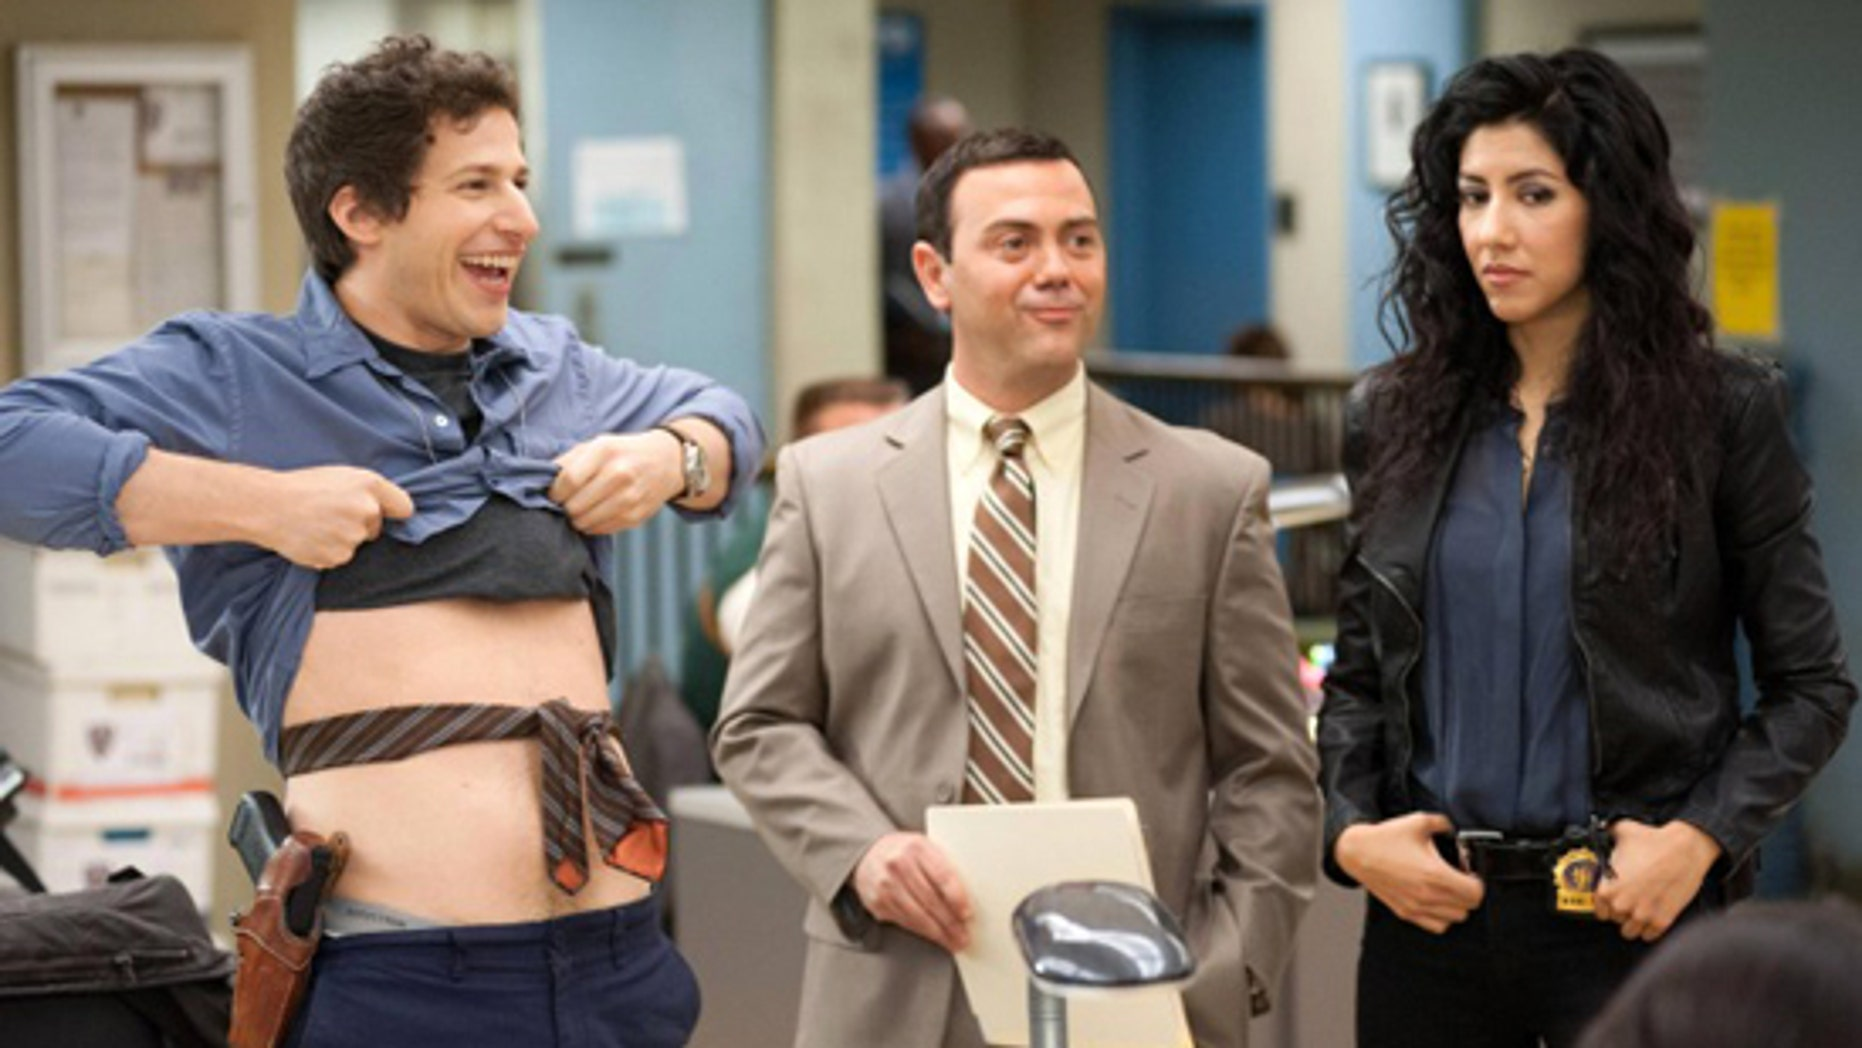 'Brooklyn Nine-Nine' is a new single-camera workplace comedy on FOX about what happens when a hotshot detective (Andy Samberg, left) gets a new Captain with a lot to prove.